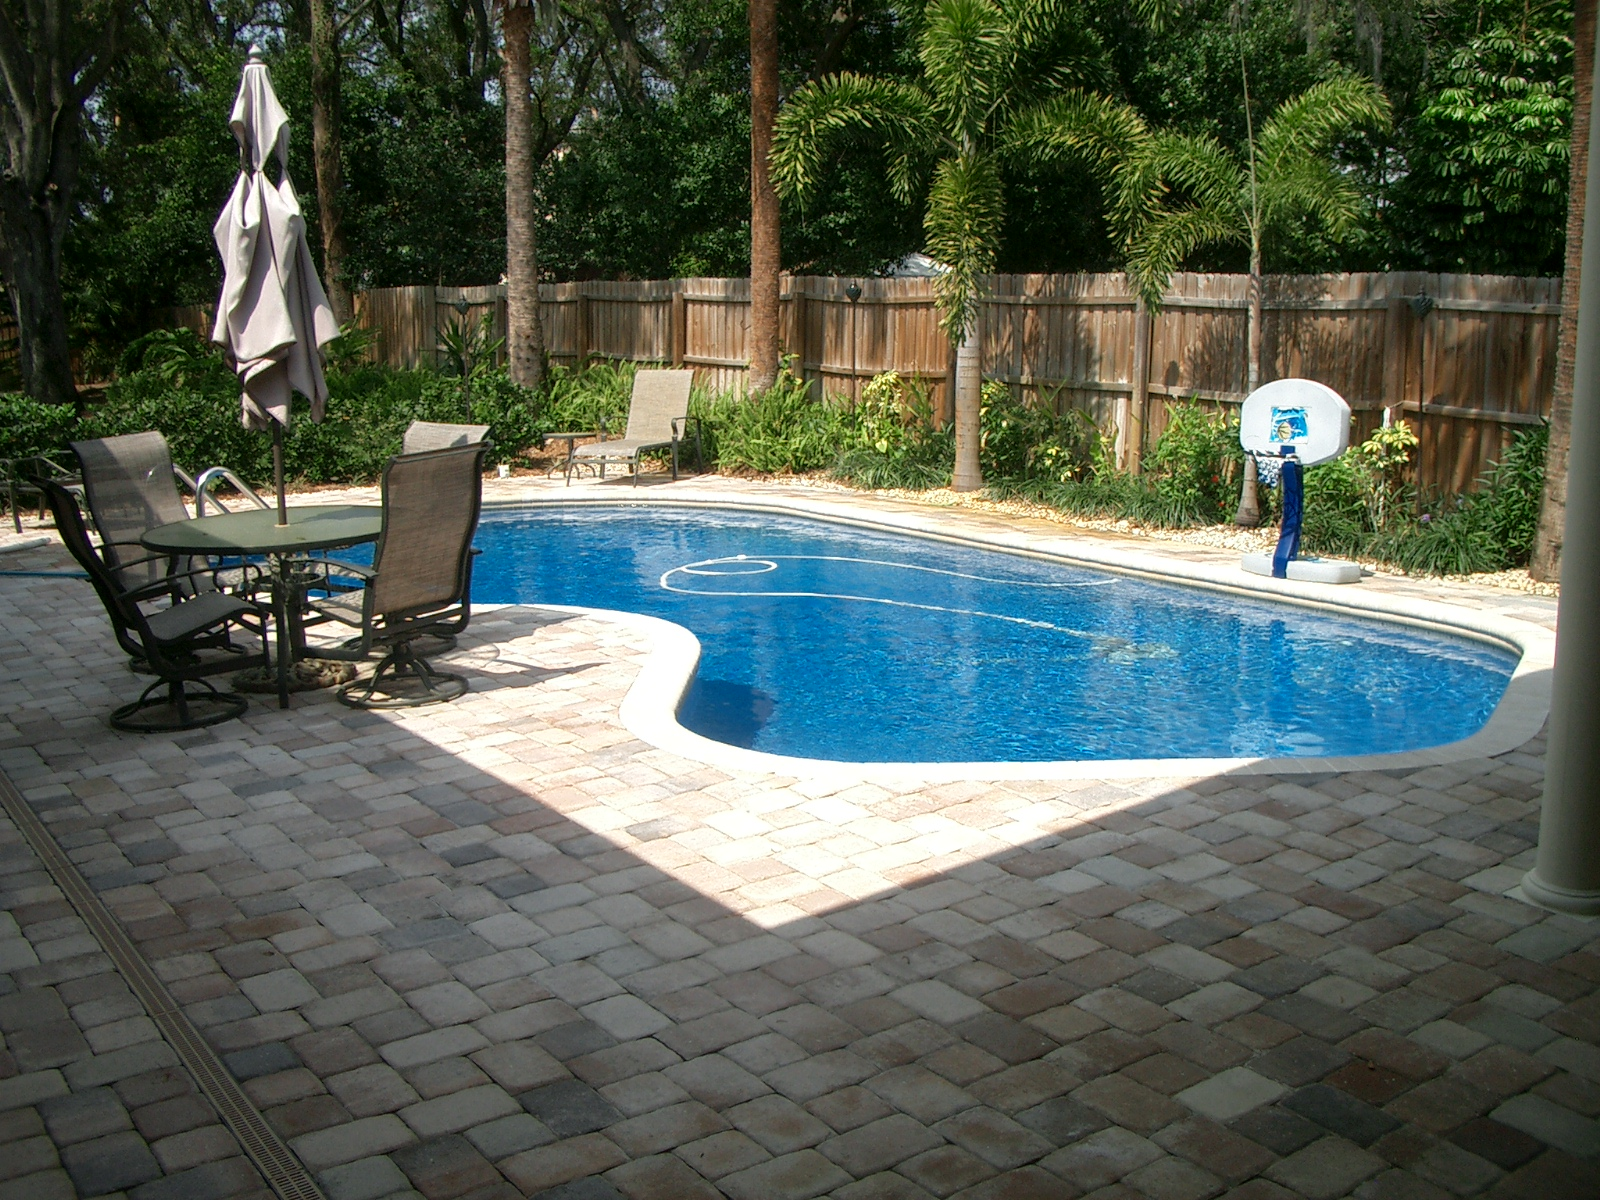 Simple Backyard Landscaping Swimming Pool With Furniture